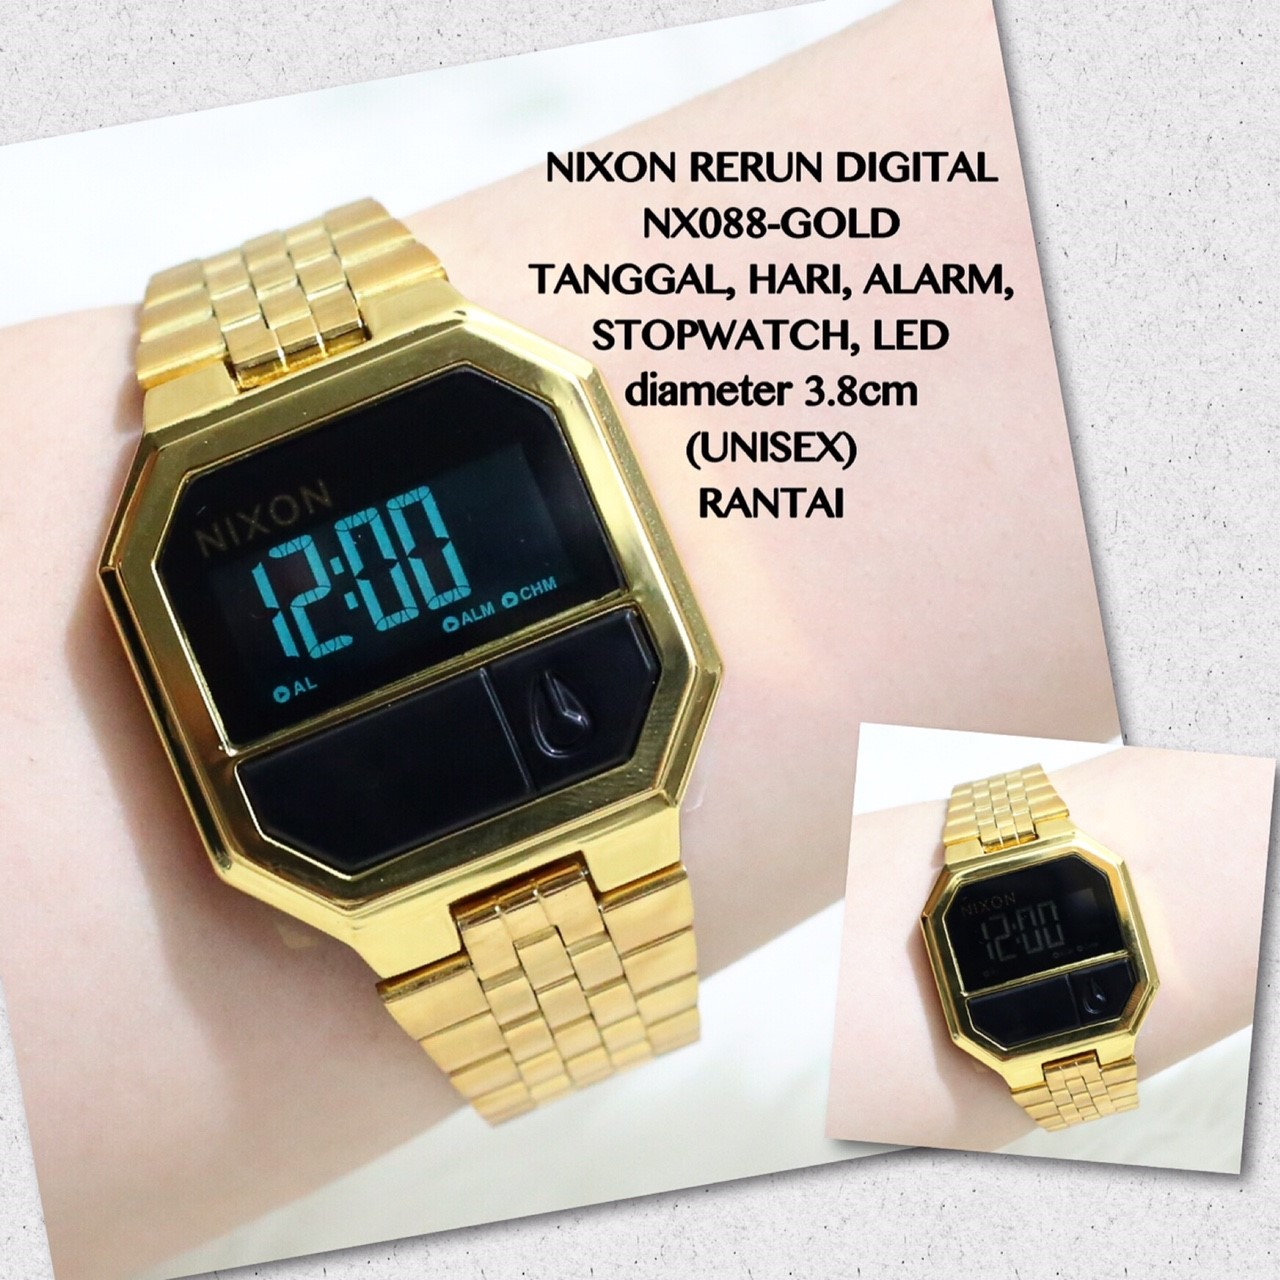 Jam tangan LED NIXON rubber karet sporty grosir supplier termurah